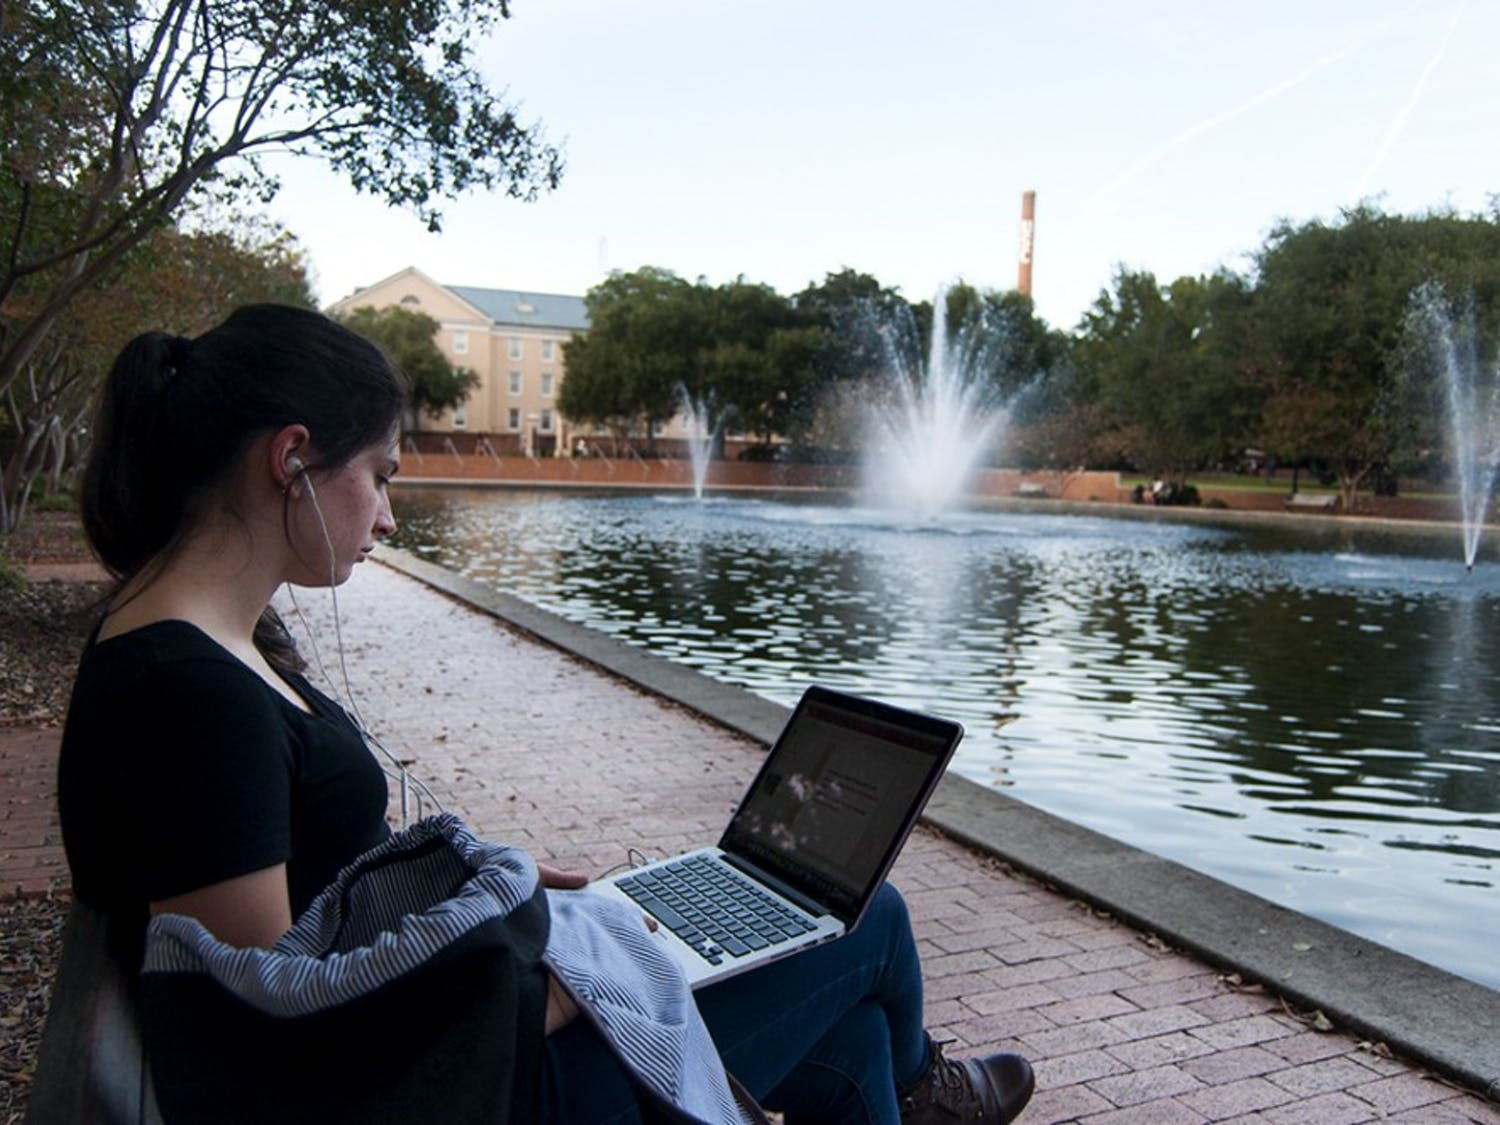 Unique playlists can enhance studying, increasing efficiency.